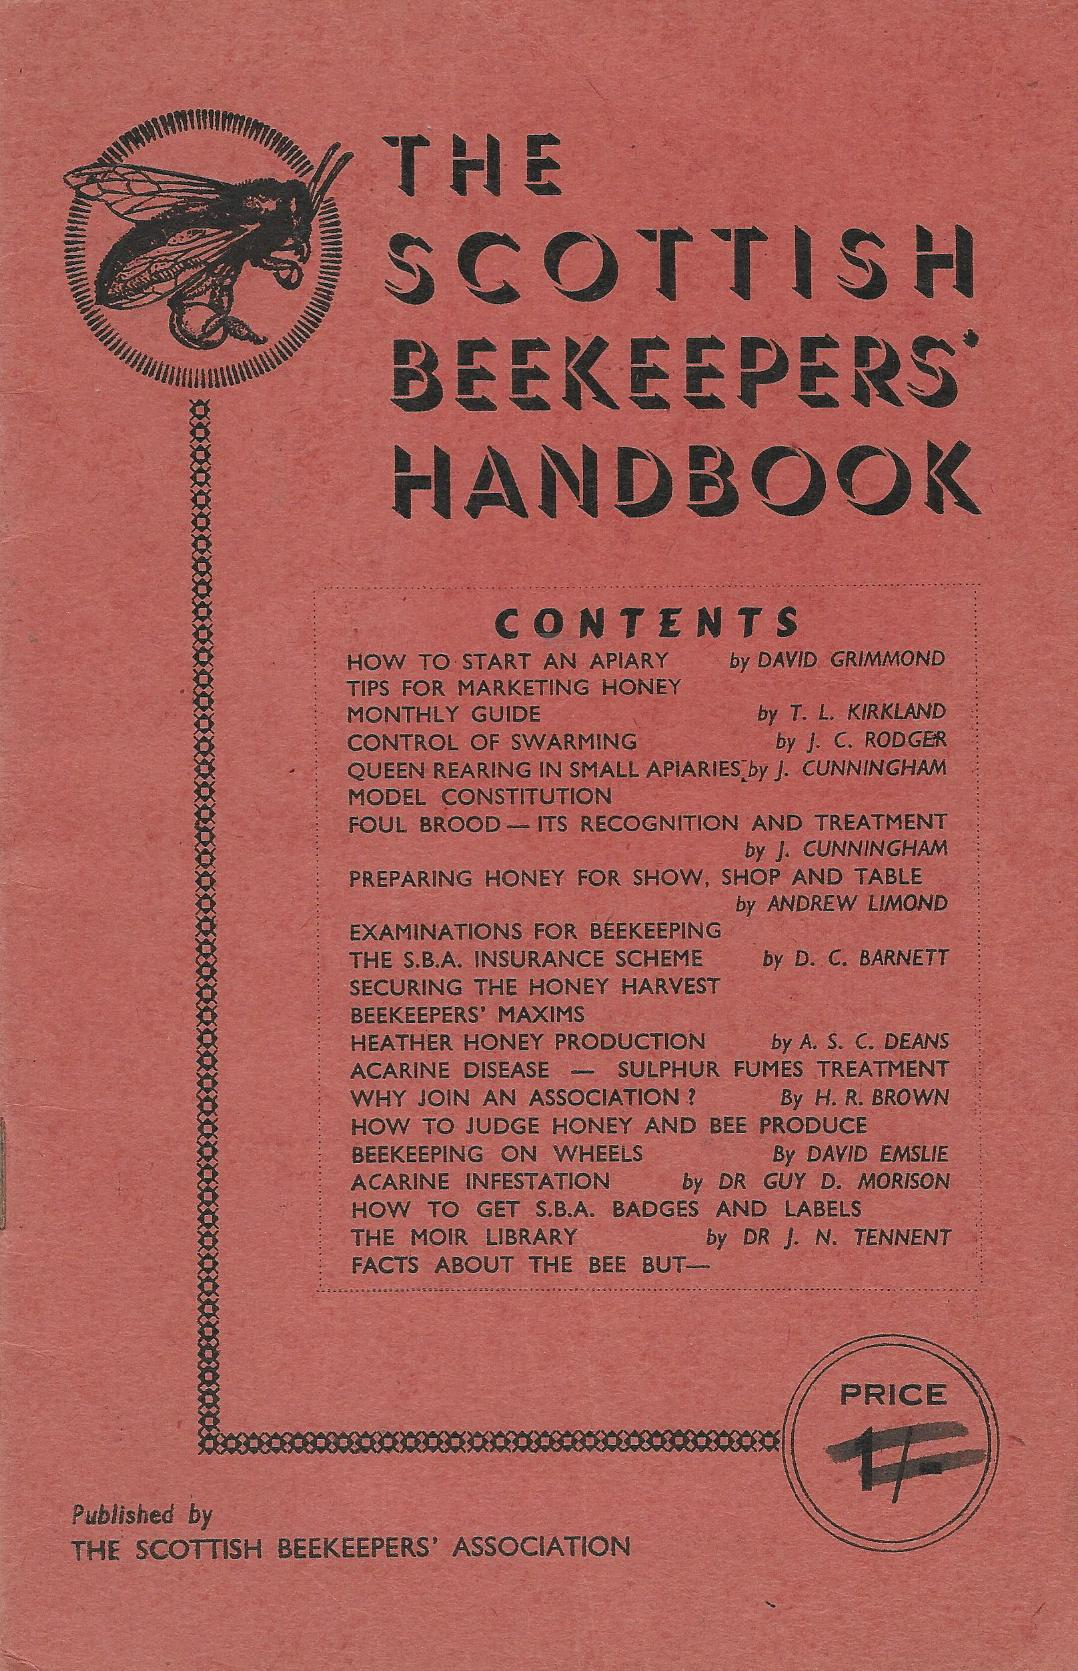 Image for The Scottish Beekeepers' Handbook